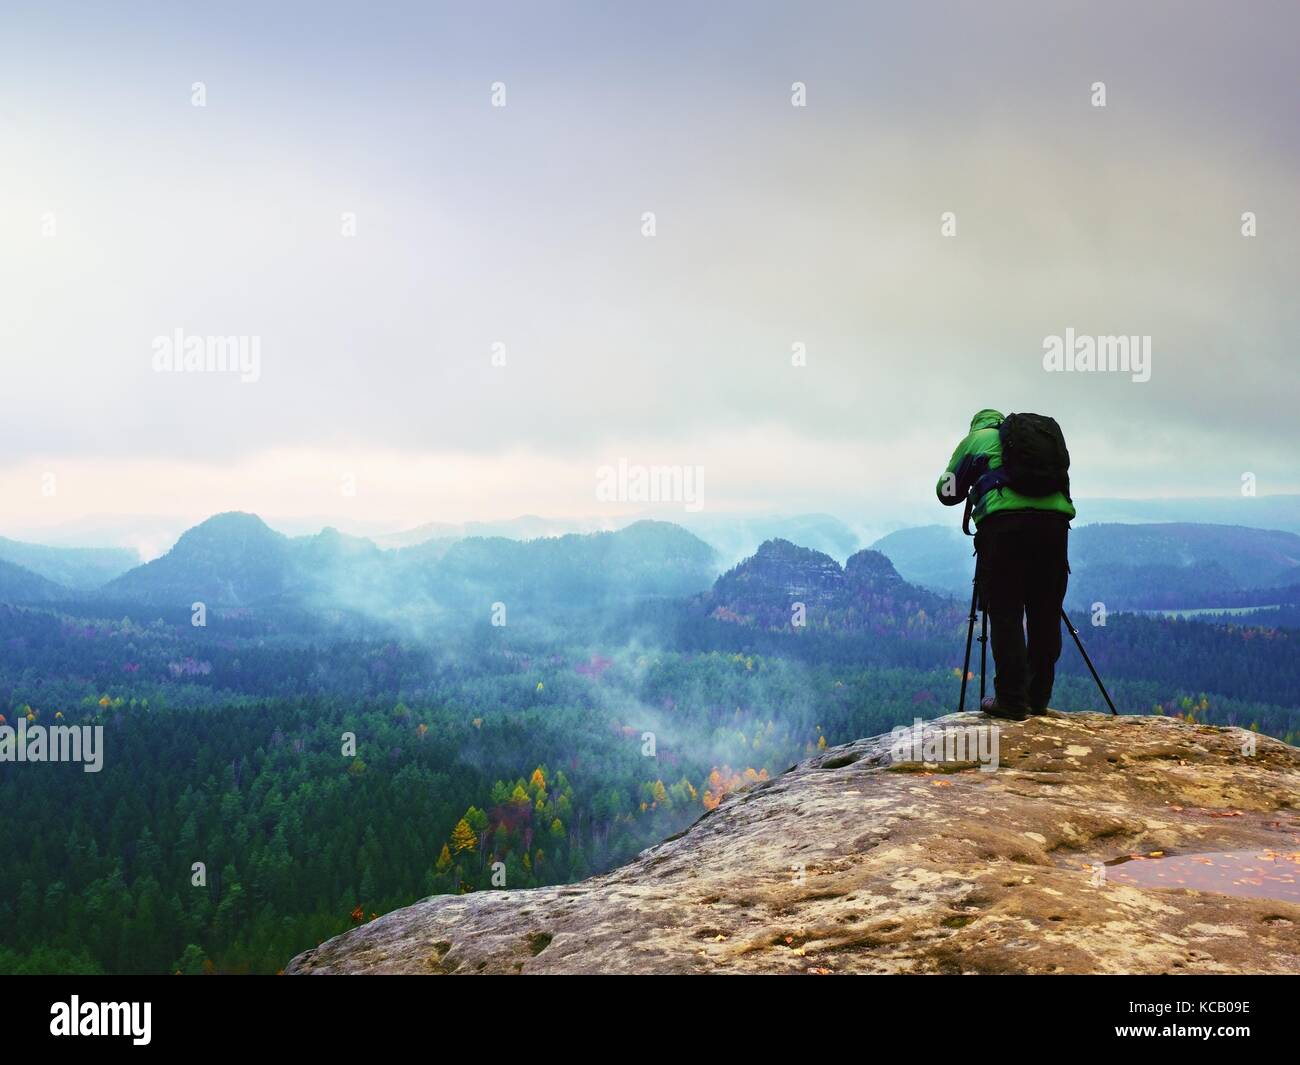 Professional photographer  in green jacket with backpack takes photos with camera on tripod on rocky peak. Dreamy - Stock Image